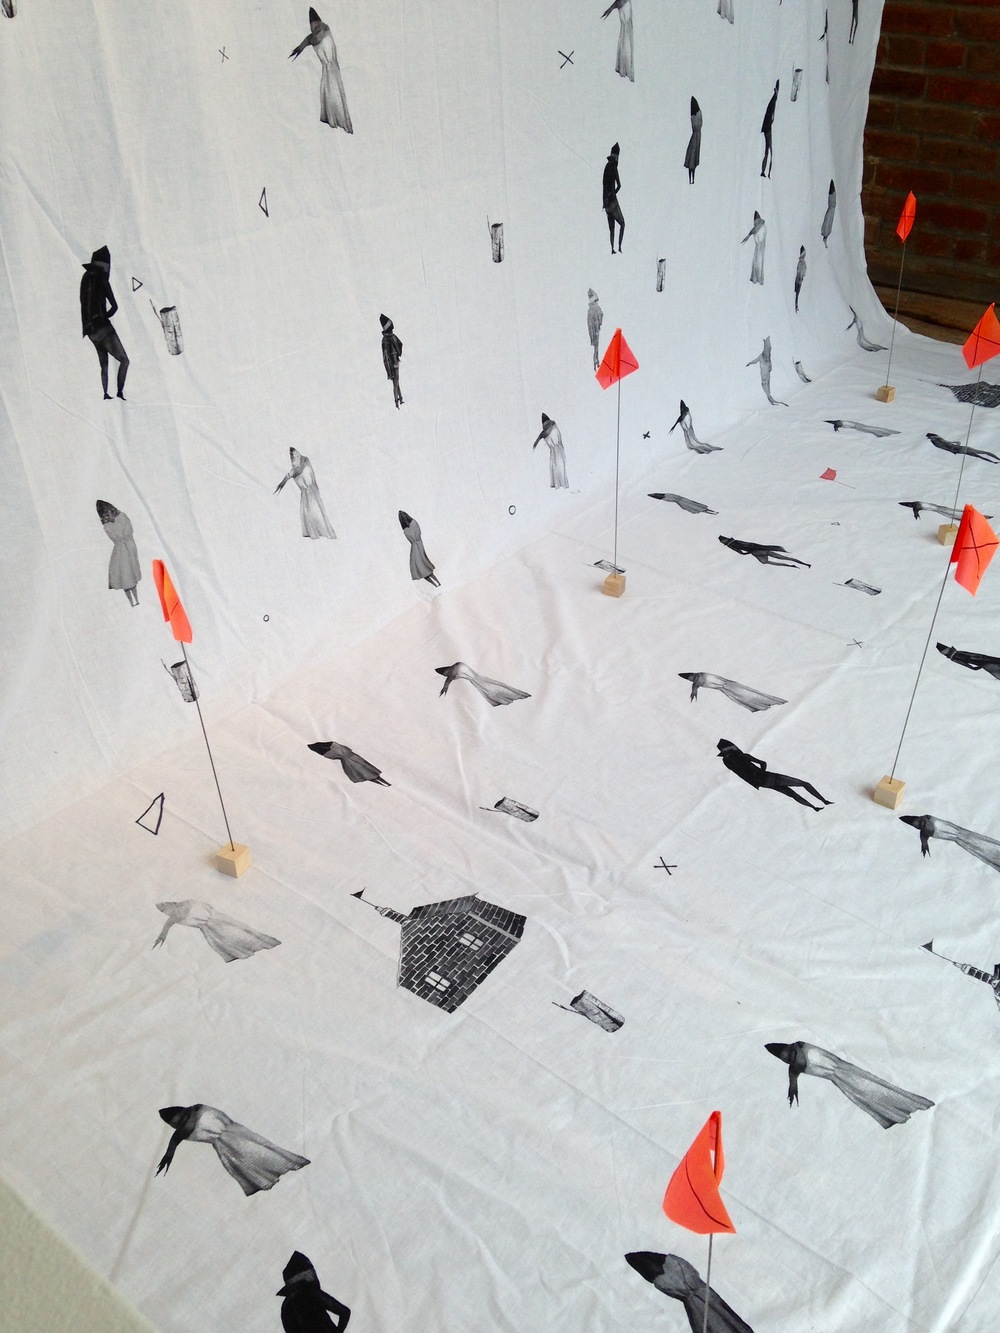 Window installation, 10 ft X 15 ft silkscreen printed fabric and orange safety flags